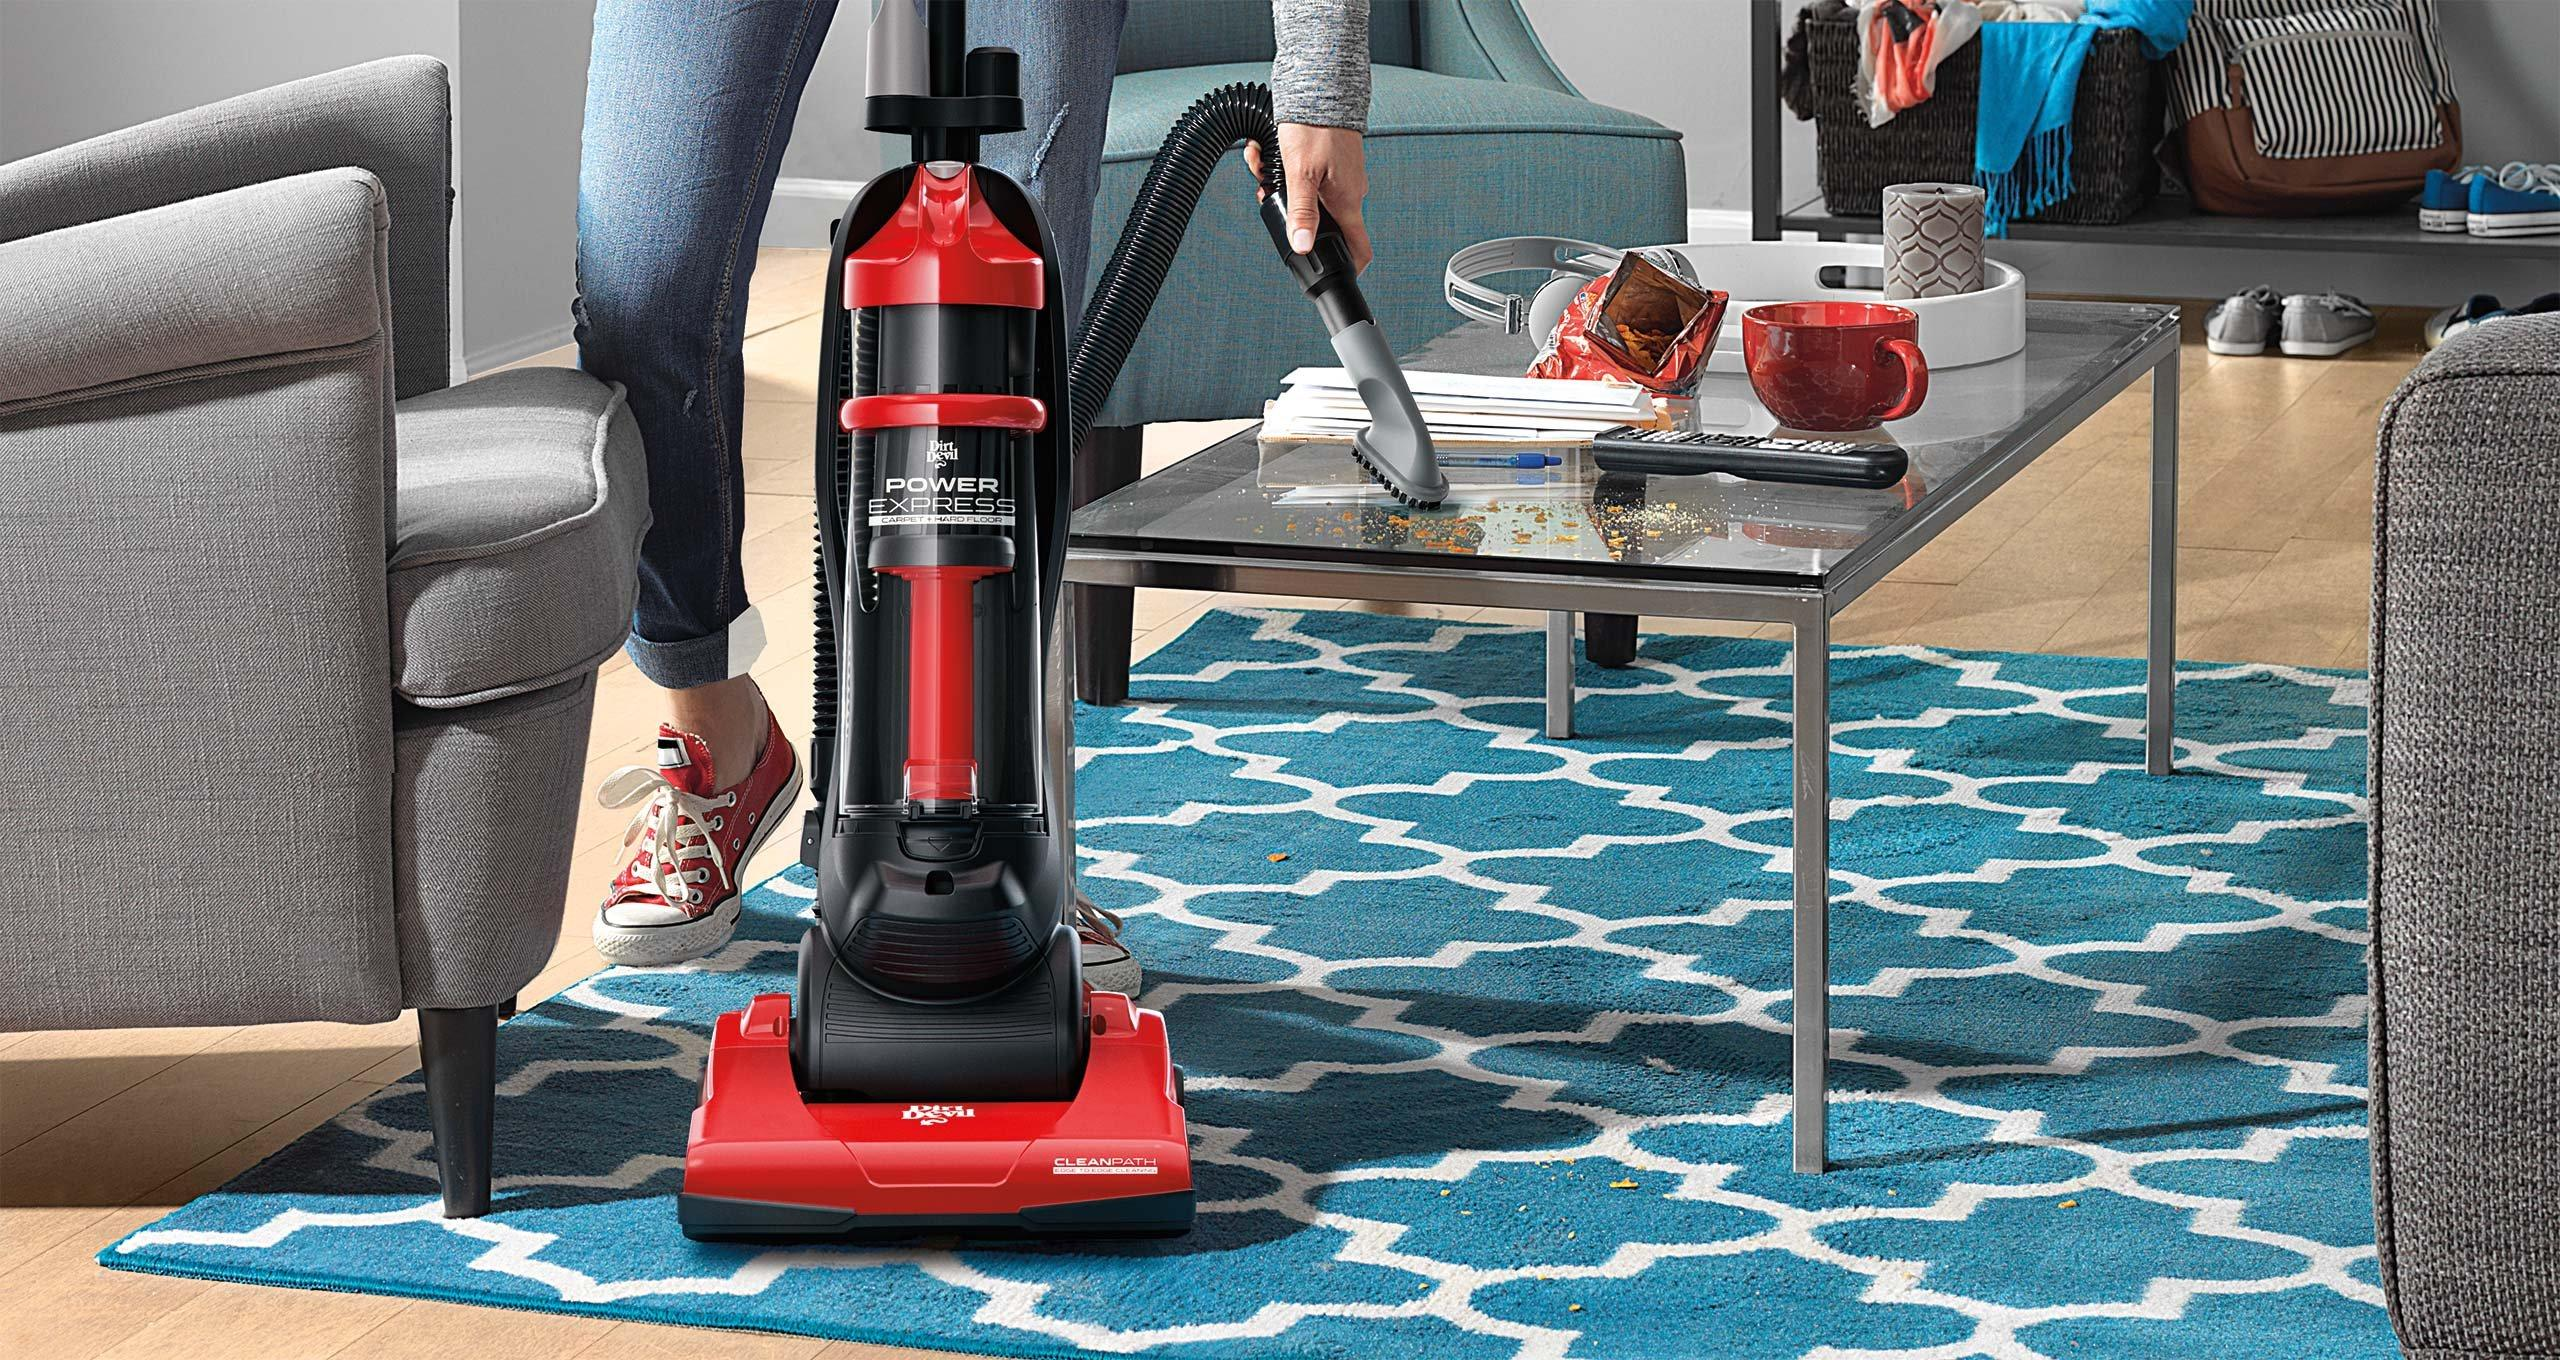 Power Express Upright Vacuum Ud20120 Dirt Devil